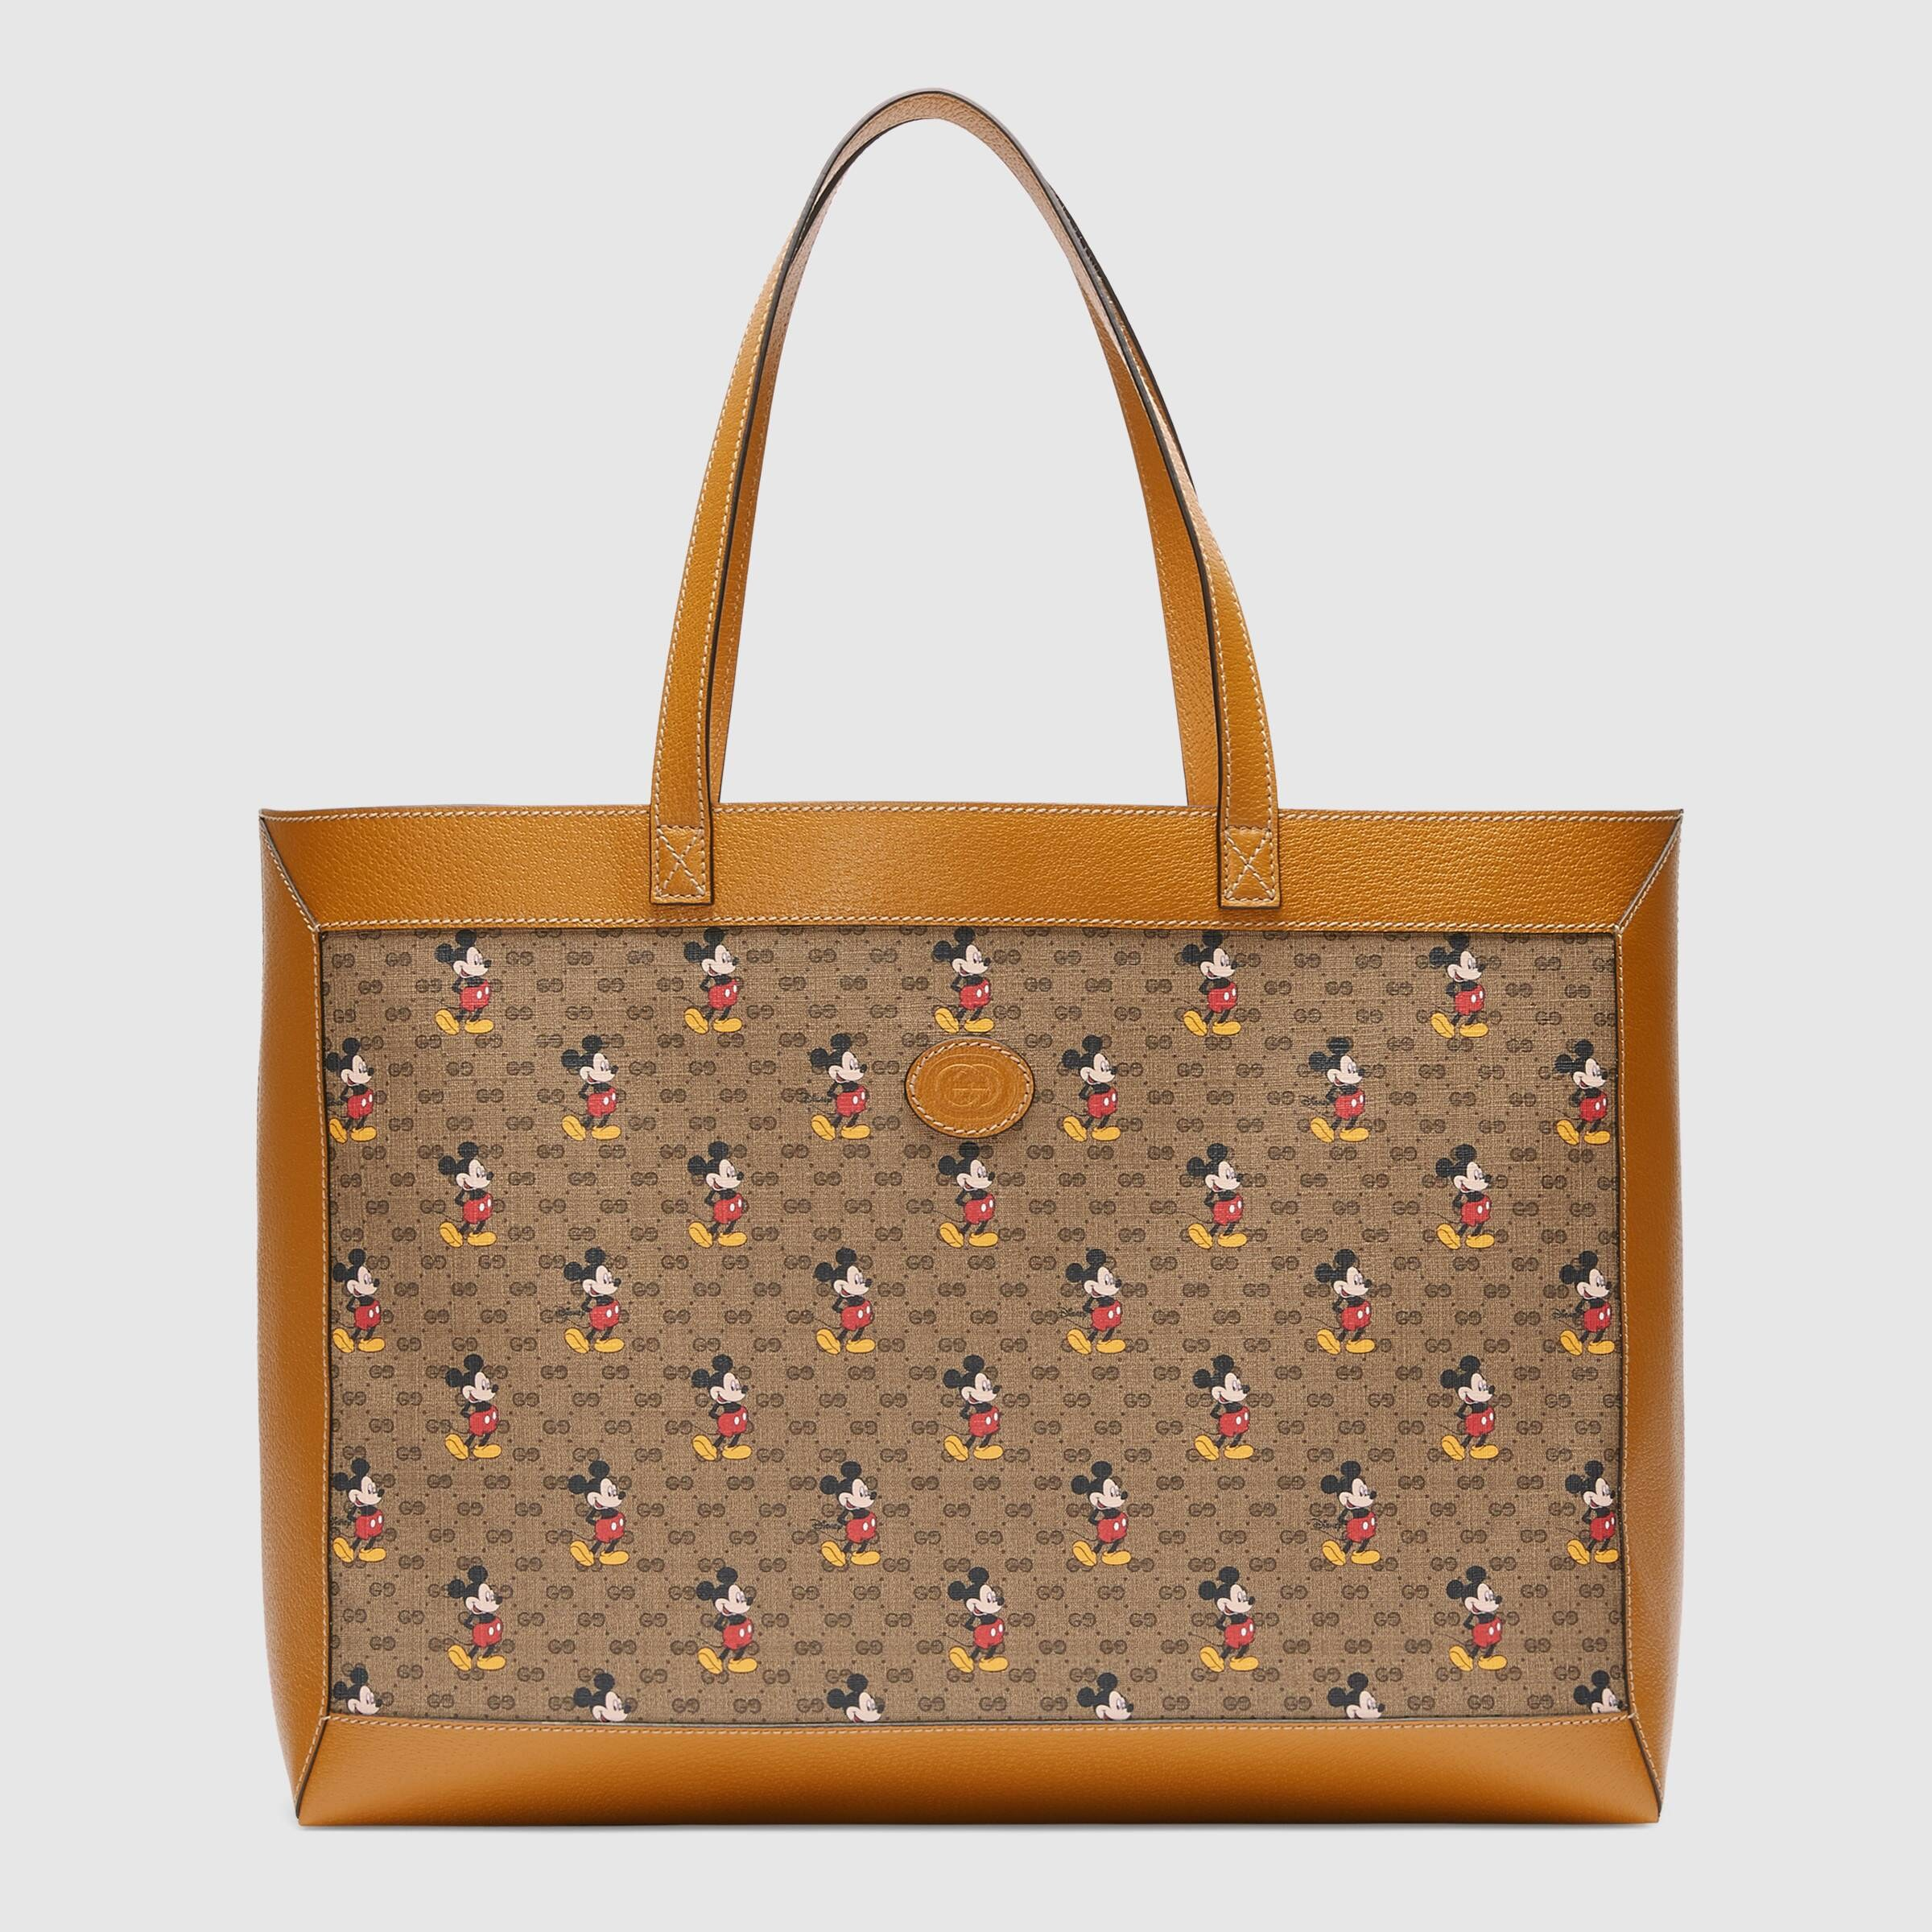 Gucci Disney x Gucci Medium Tote 547947 Light Brown Leather